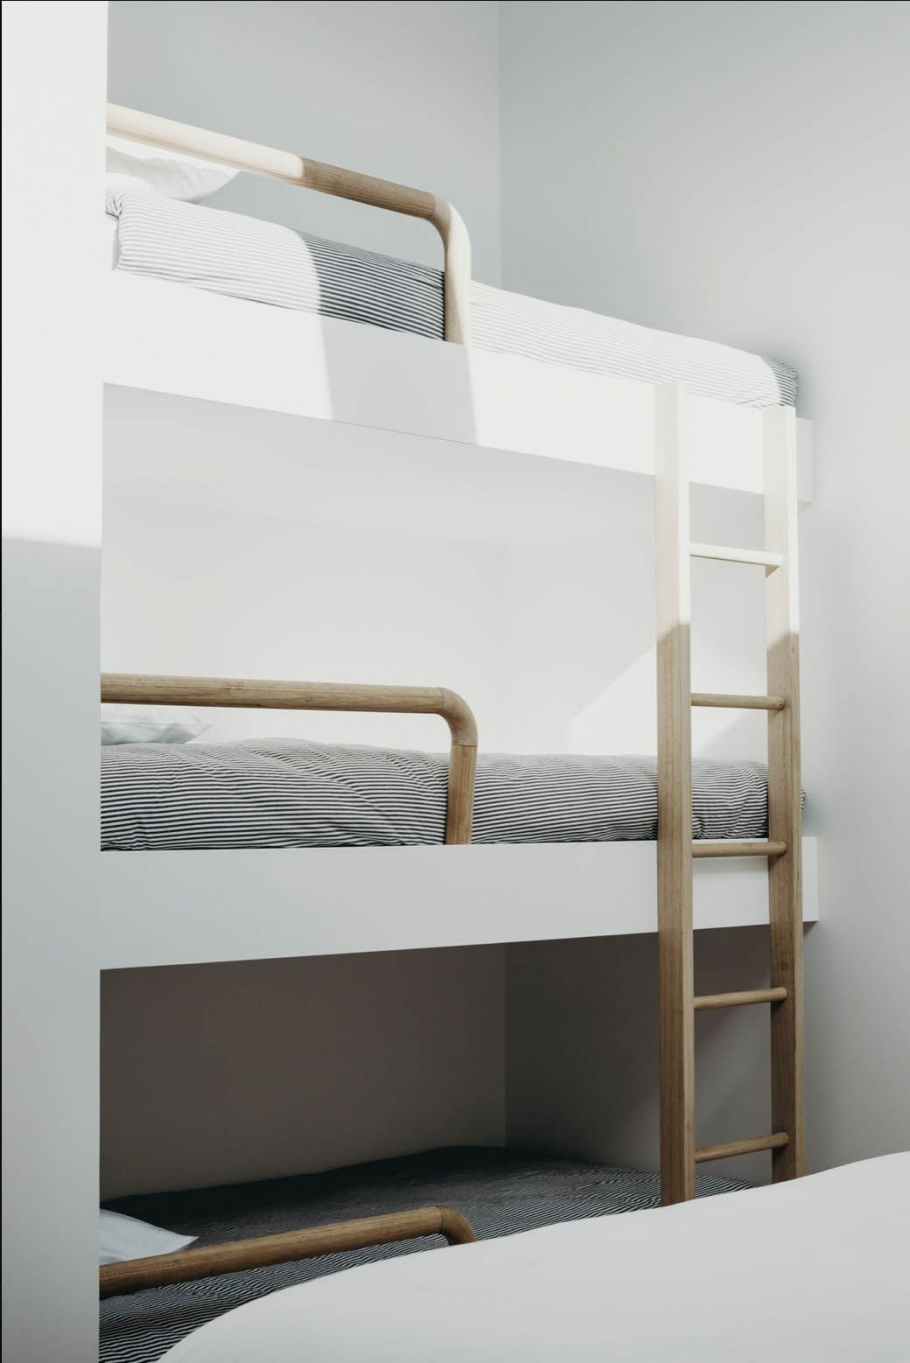 90 top Picks for A Triple Bunk Bed for Kids Rooms-9567